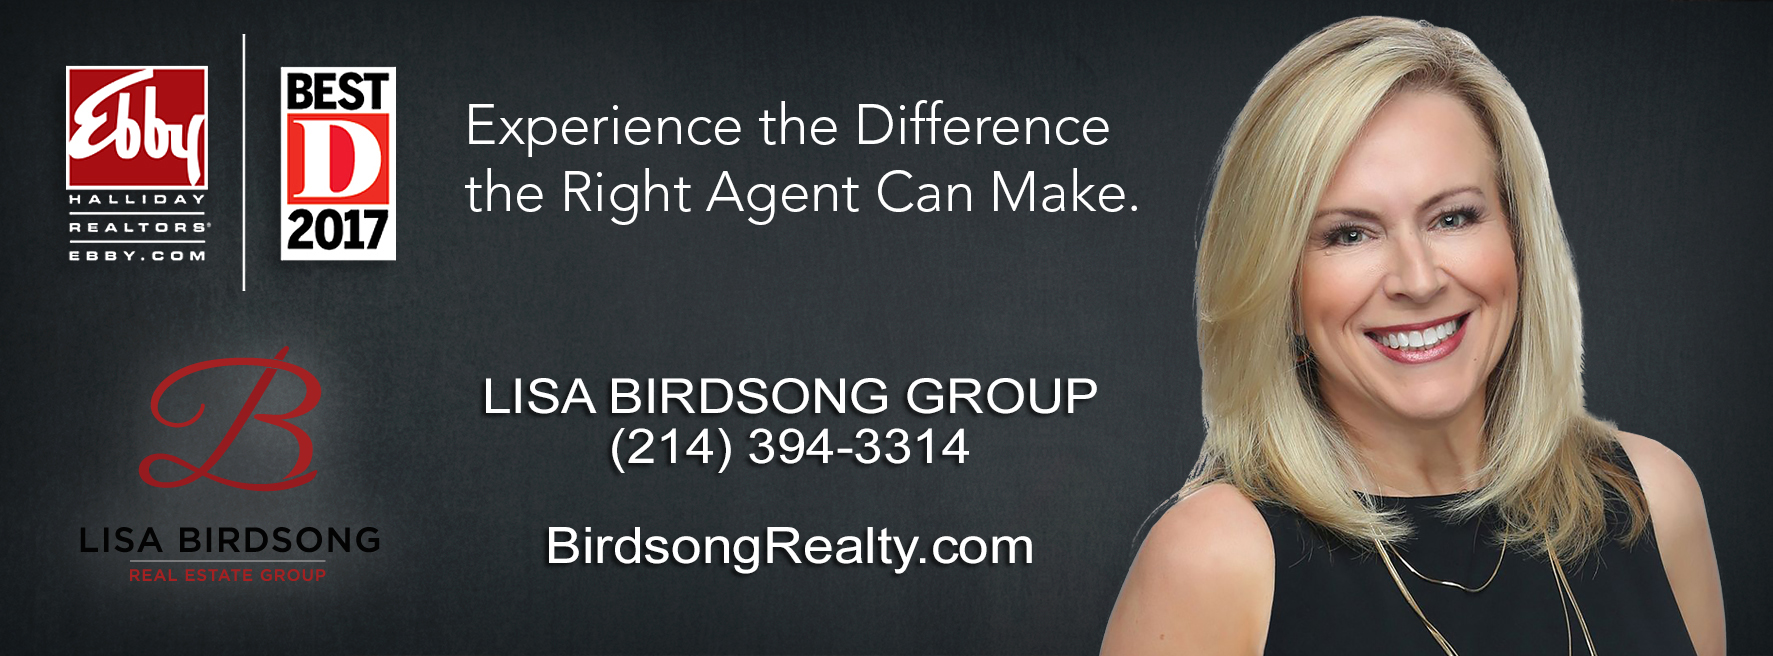 Lisa Birdsong Best Realtor <a href='http://www.birdsongrealty.com/index.php?types[]=1&types[]=2&areas[]=city:Dallas&beds=0&baths=0&min=0&max=100000000&map=0&quick=1&submit=Search' title='Search Properties in Dallas'>Dallas</a>